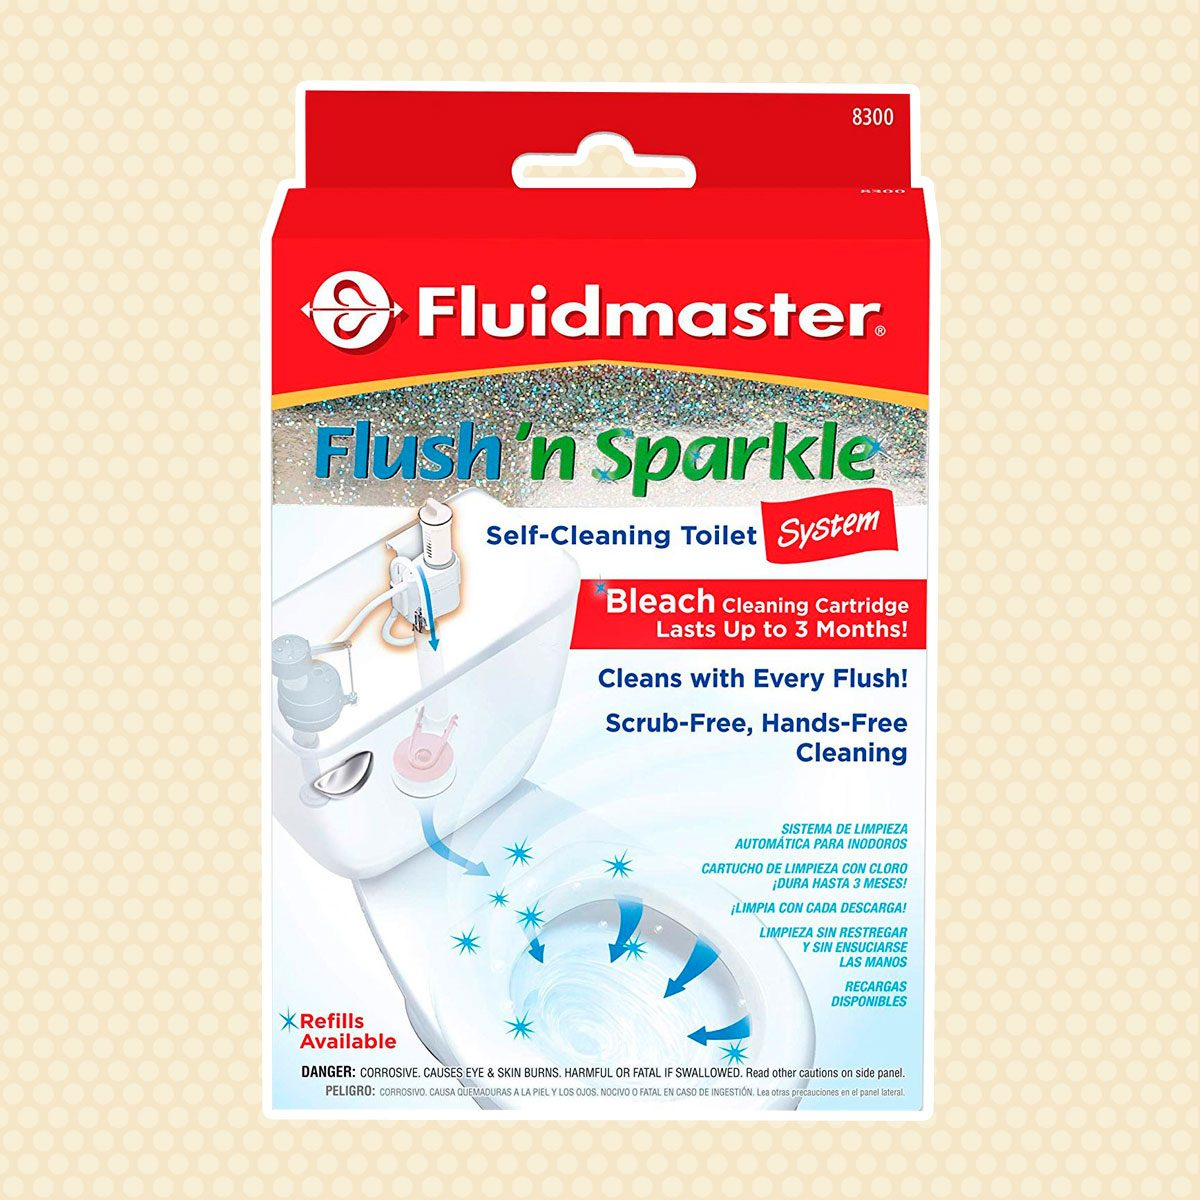 Fluidmaster 8300 Flush 'n Sparkle Automatic Toilet Bowl Cleaning System